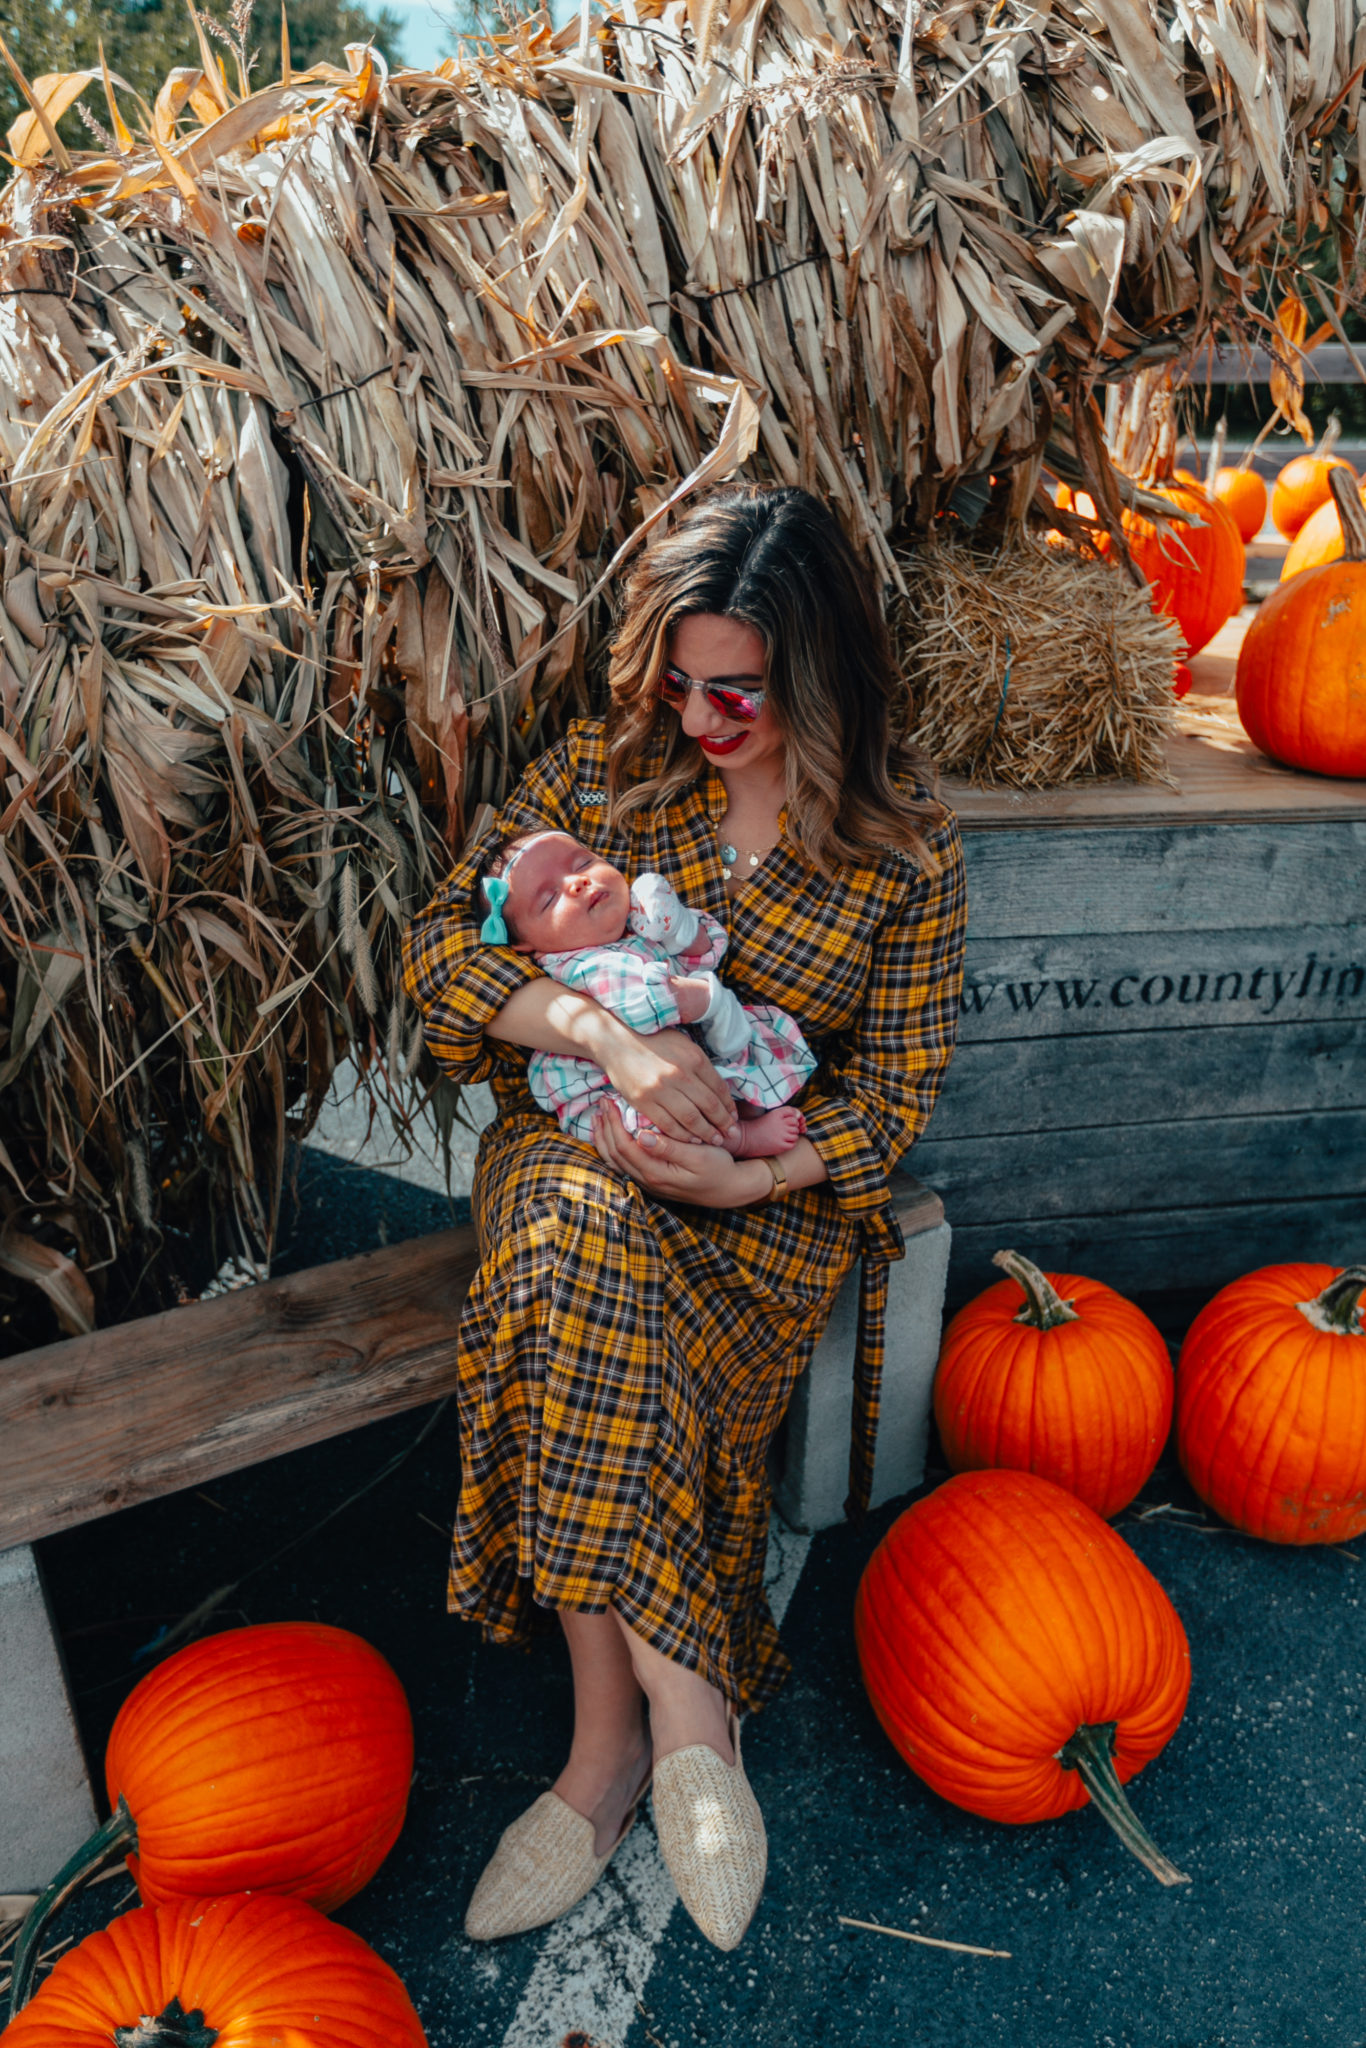 County Line Apple Orchard & On Mondays We Link Up (#135) by popular Chicago blog, Glass of Glam: image of a woman holding her daughter at the County Line Apple Orchard and wearing an Anthropologie Dalton Wrap Maxi Dress, Grande Cosmetics GrandeLIPS Plumping Liquid Lipstick, Semi-Matte, Warby Parker Haskell sunglasses, Steve Madden Mattis Textured Mules, and Gucci GG Supreme messenger bag and Carters Plaid Twill Dress.